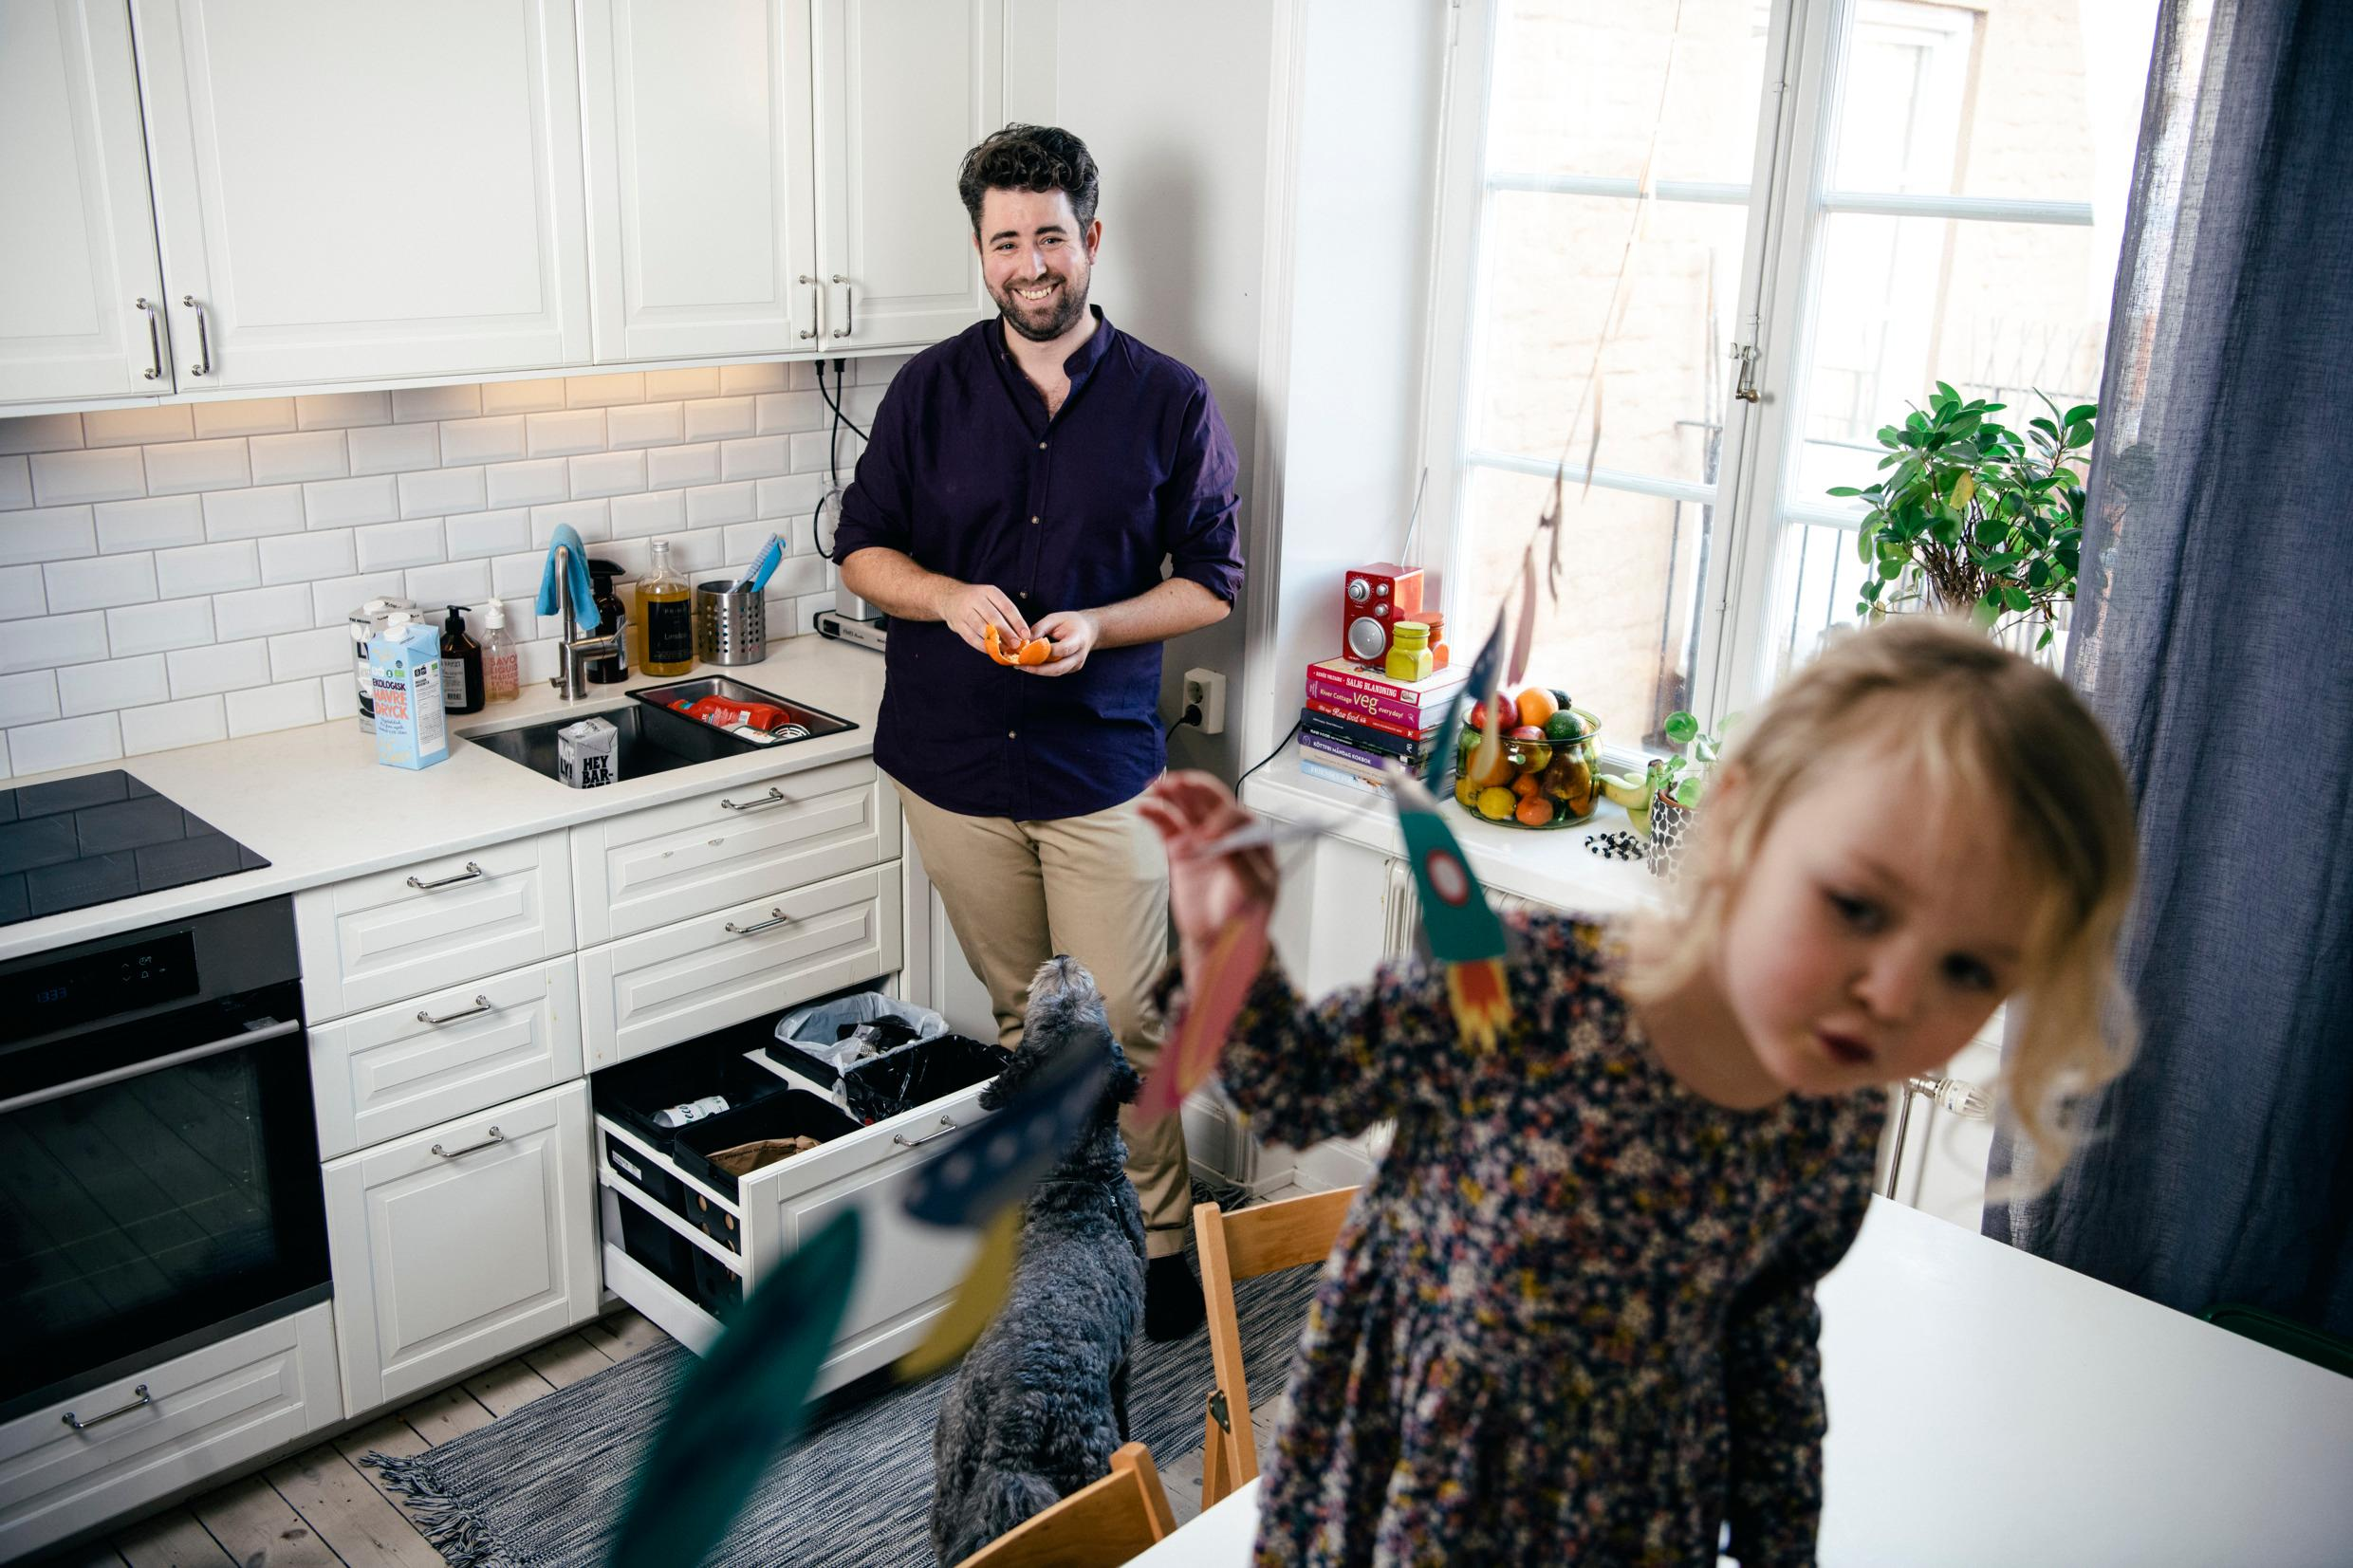 A father and his daughter in a kitchen by a drawer with recycling.